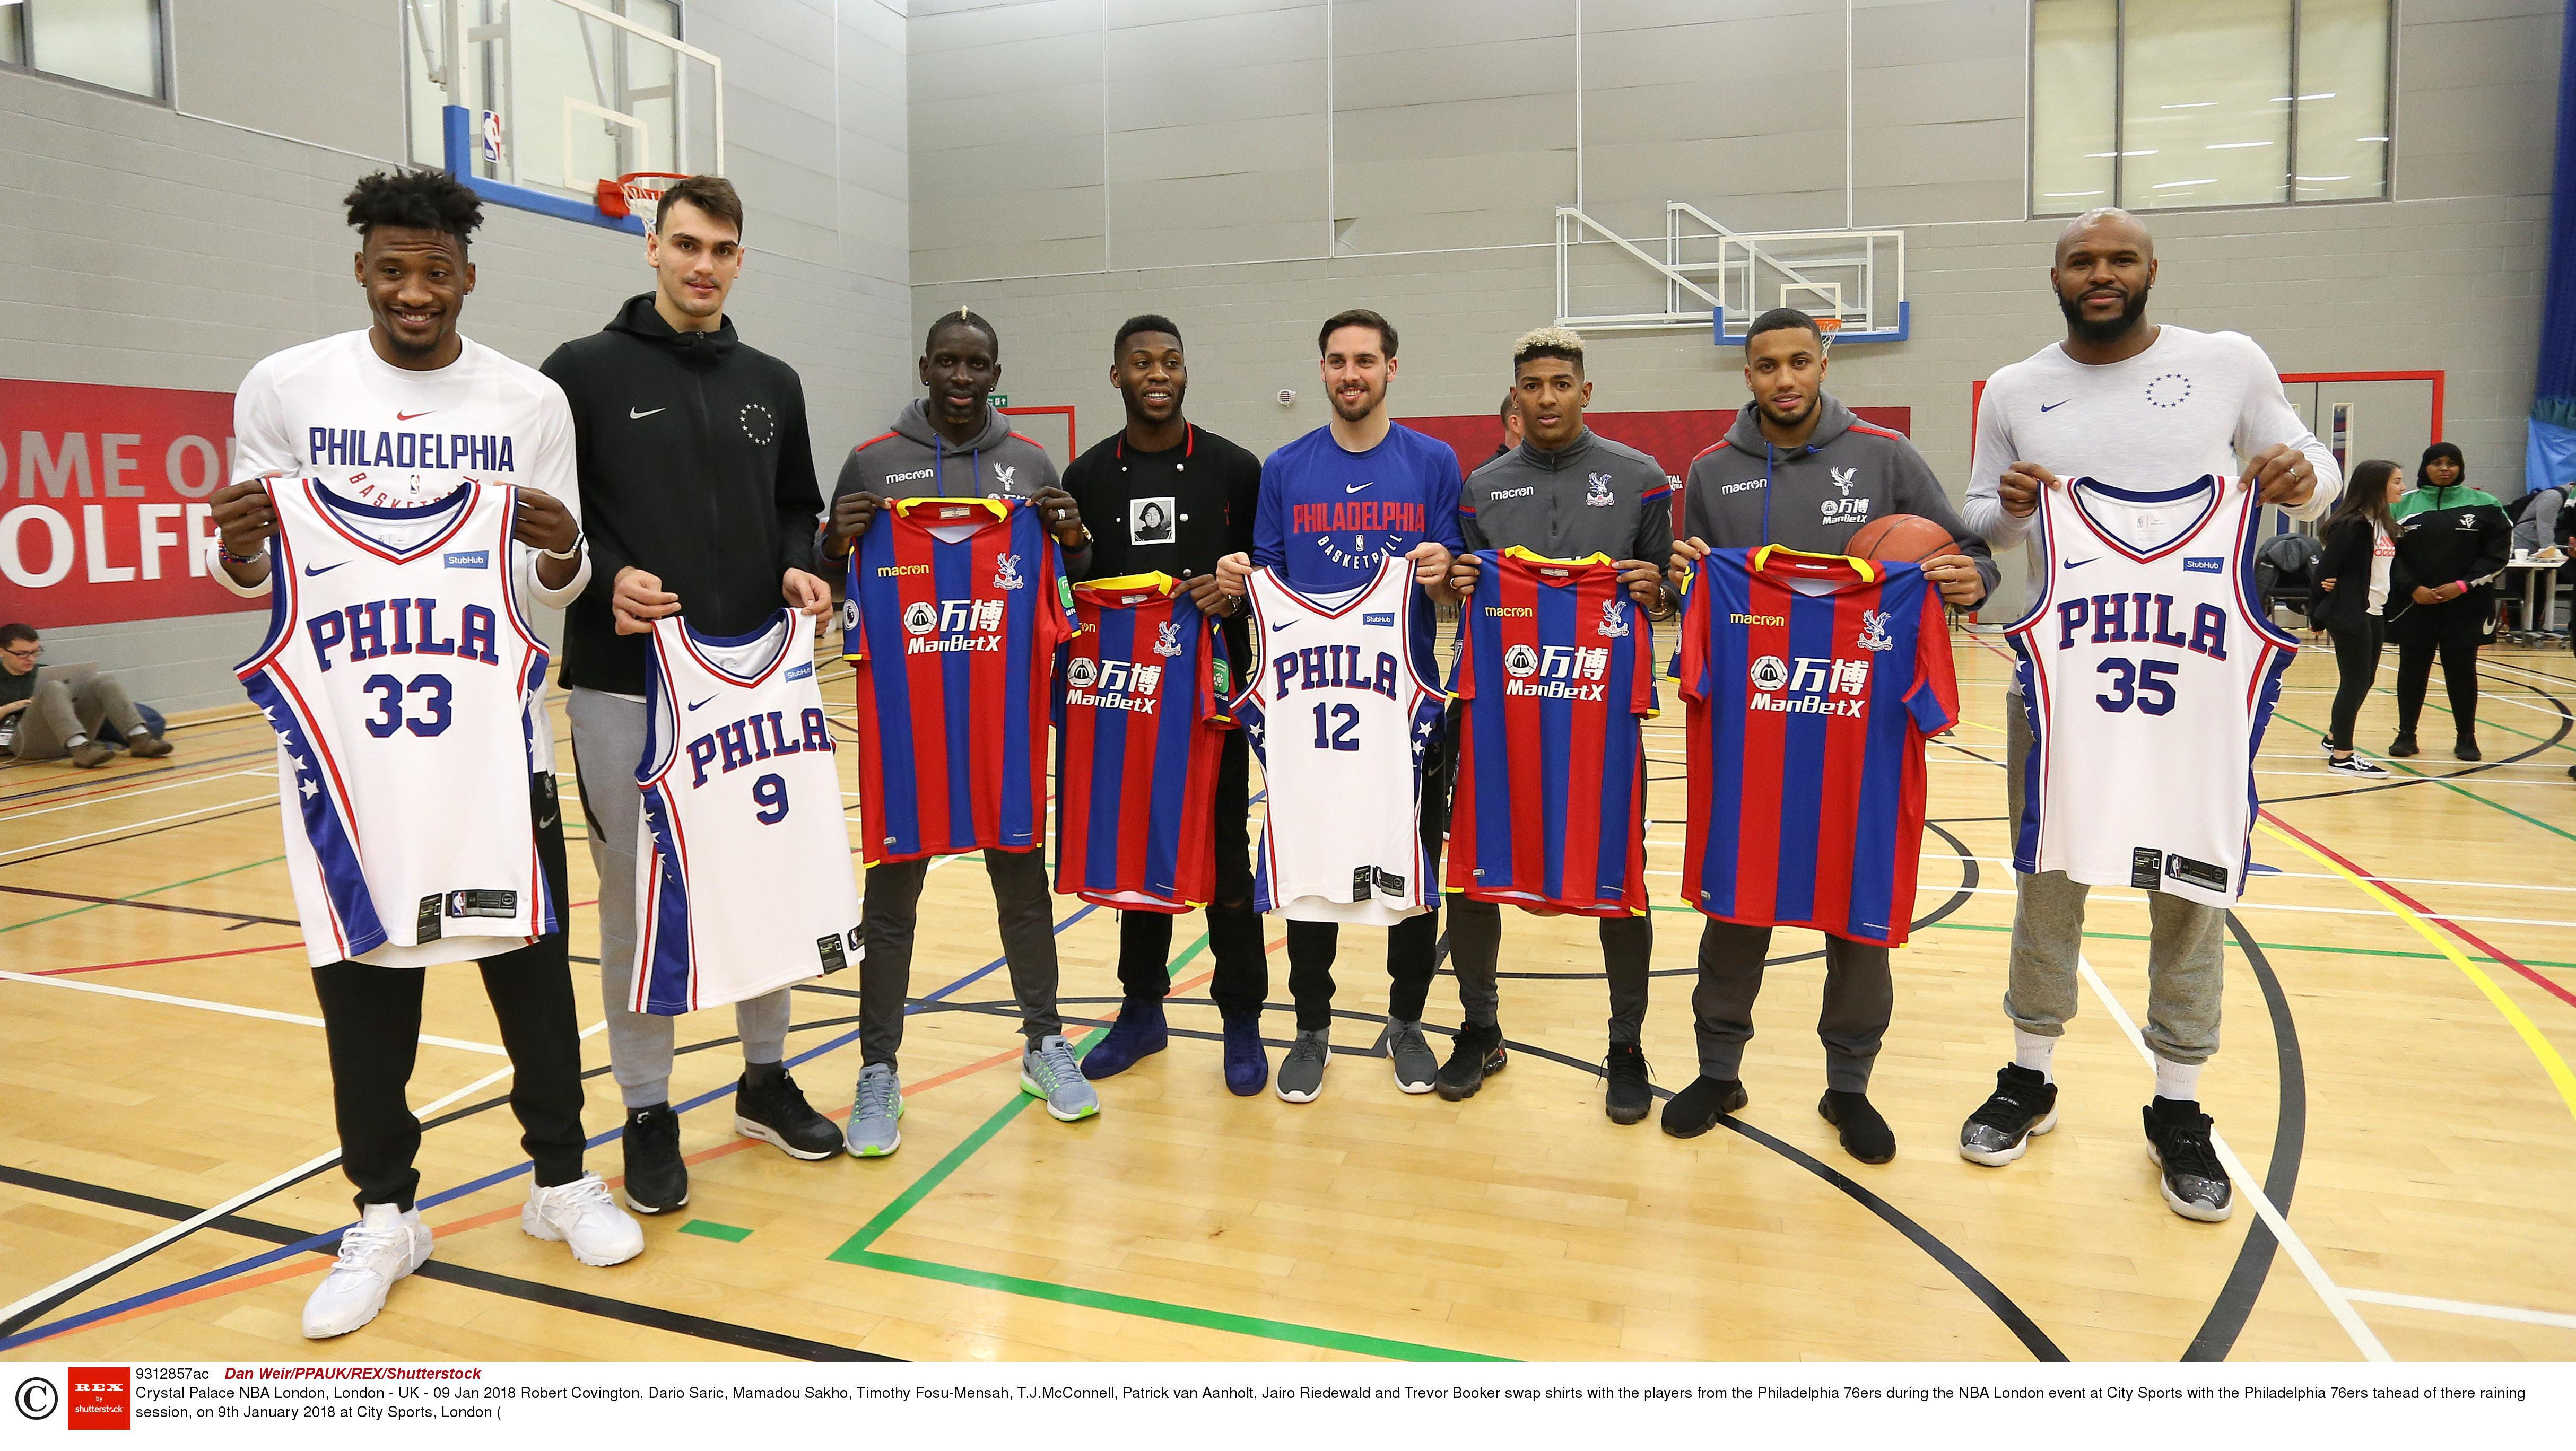 Crystal Palace stars look like children as Philadelphia 76ers players tower over them during kids clinic ahead of NBA London game